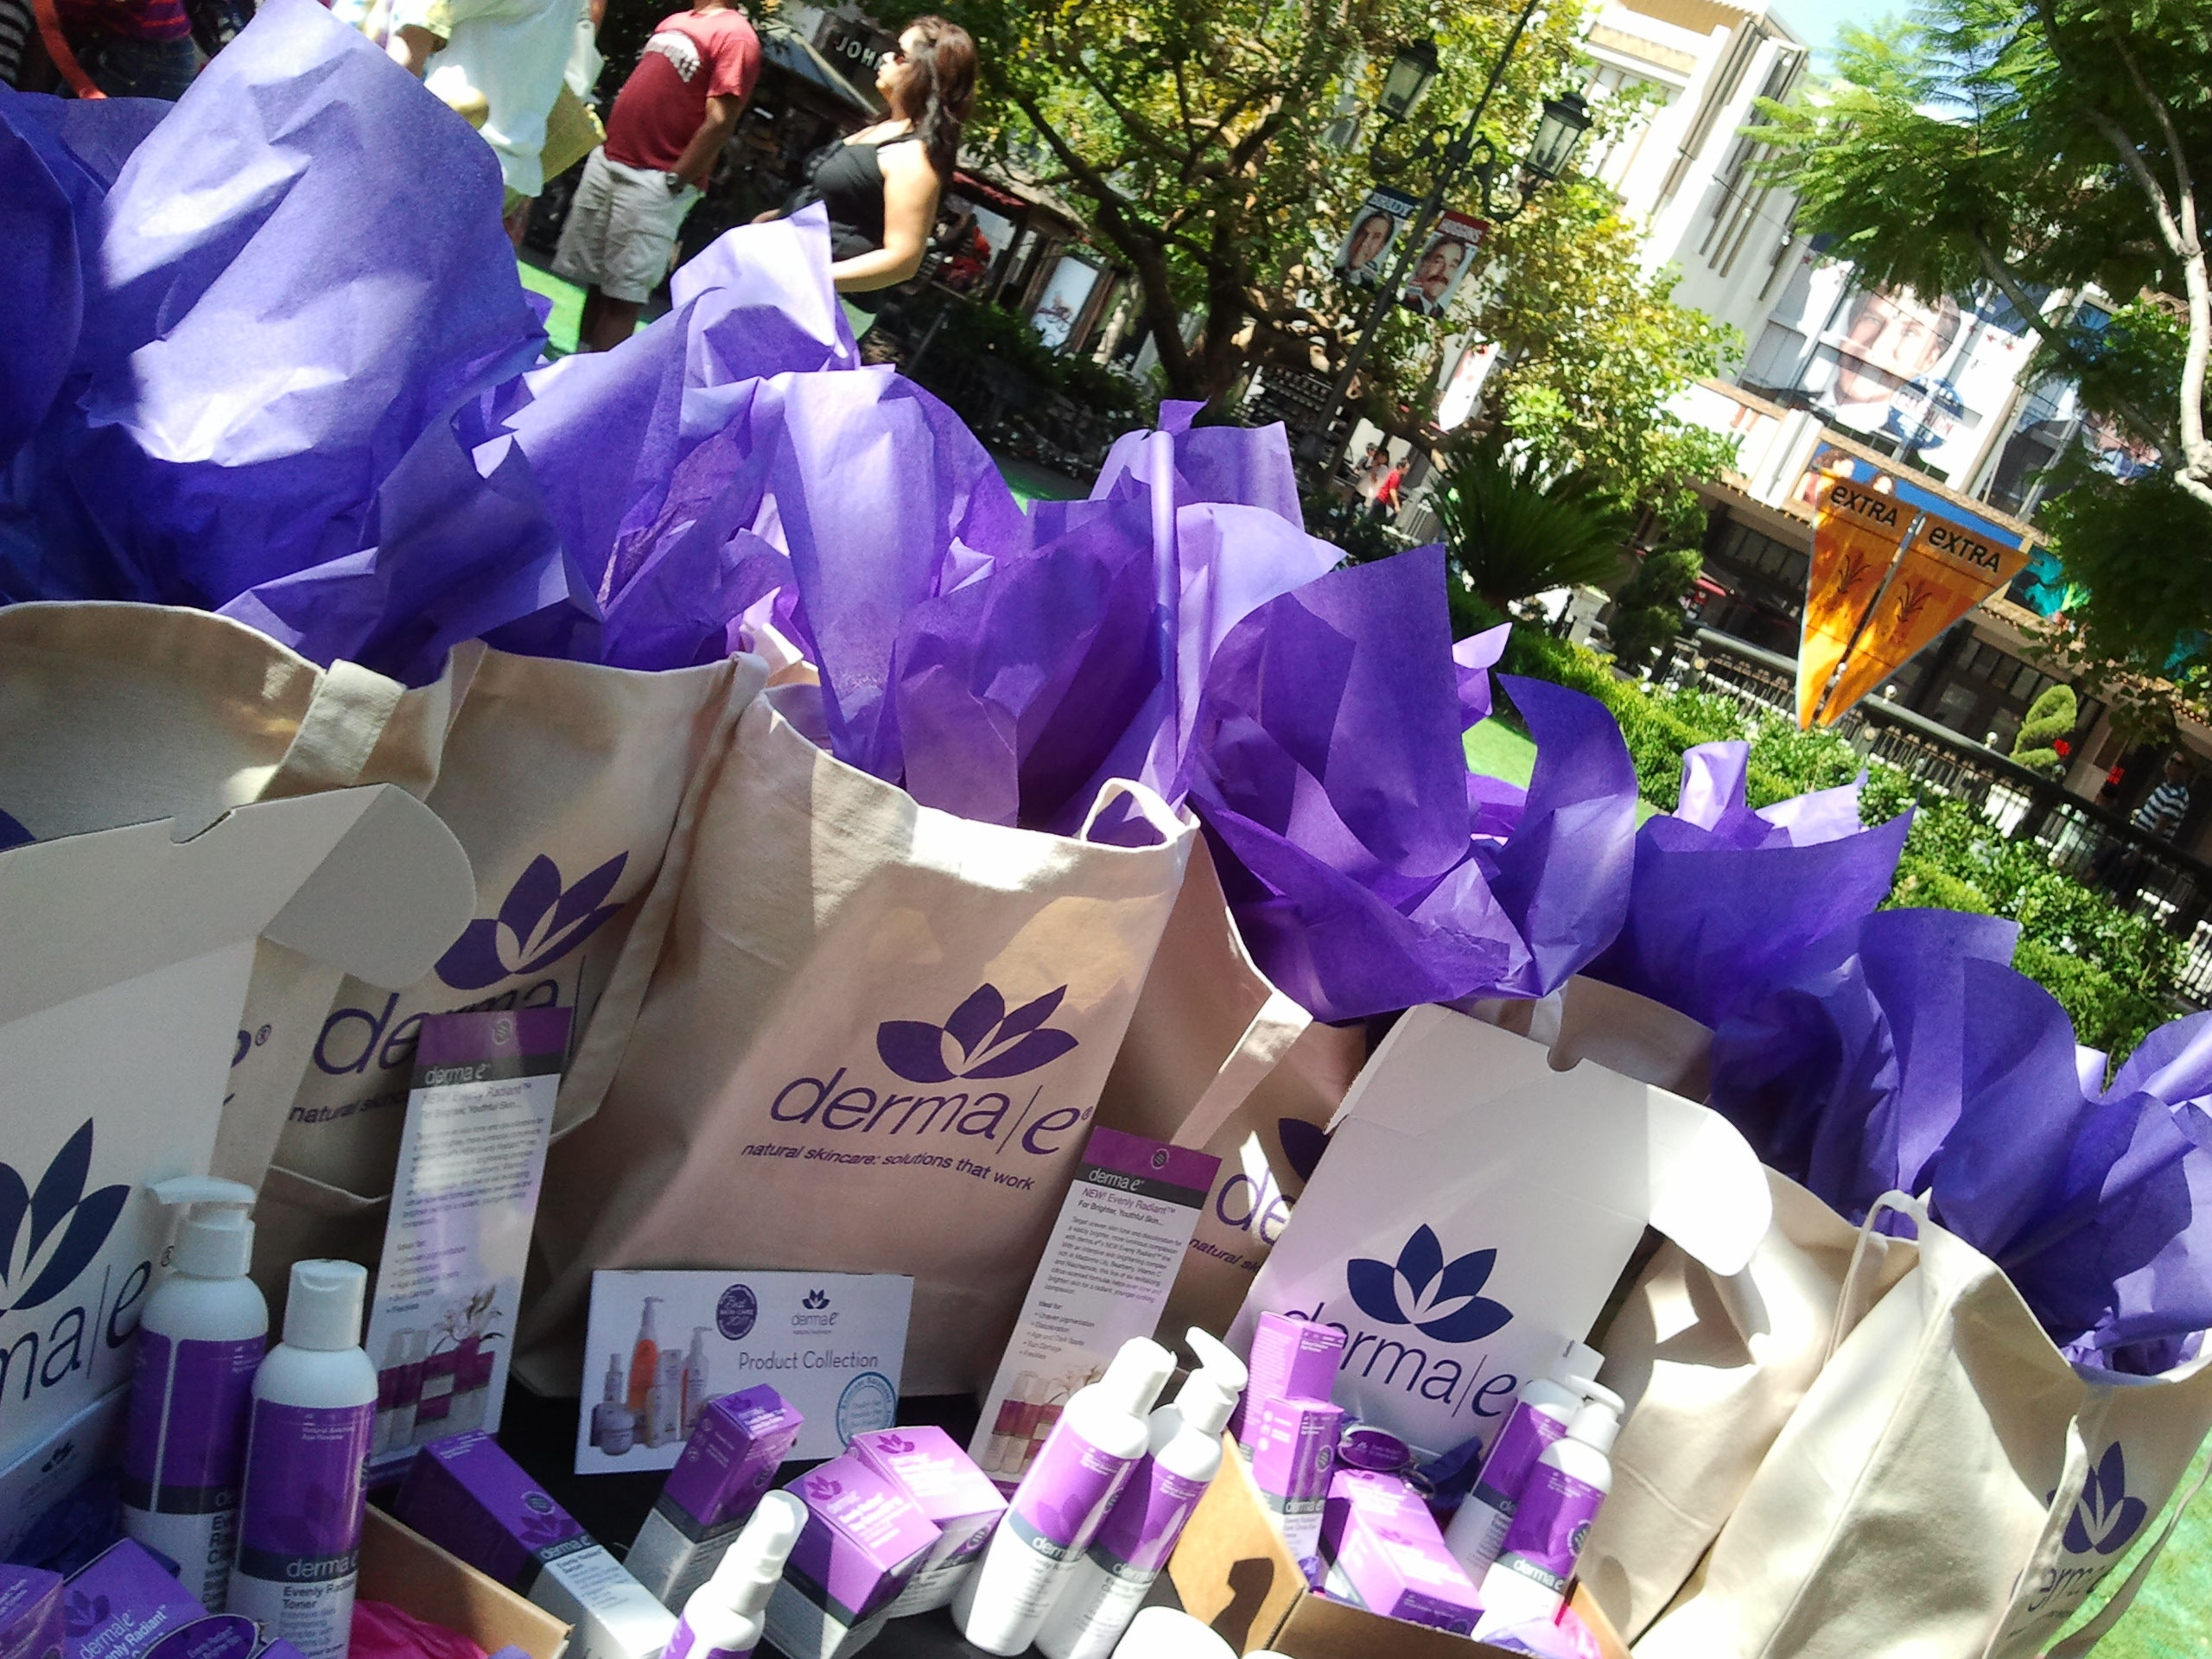 derma e gift bags on extra